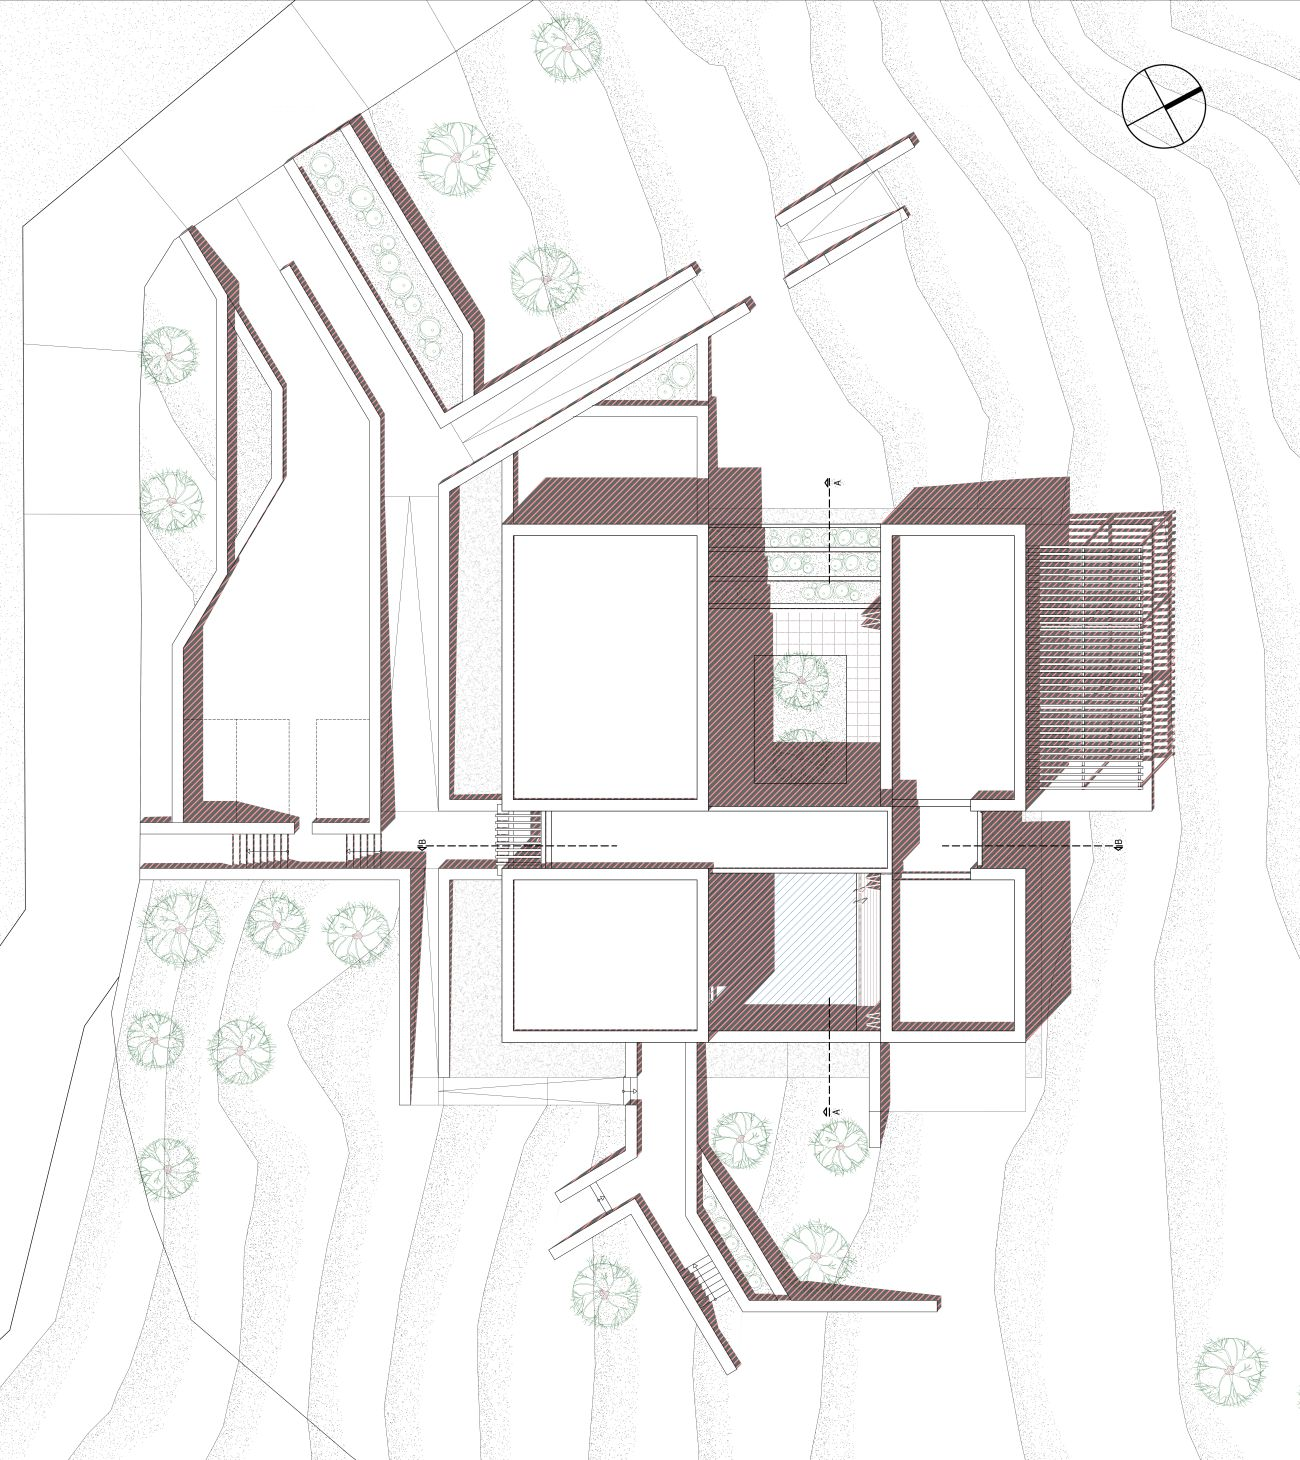 02-square-house-site-plan